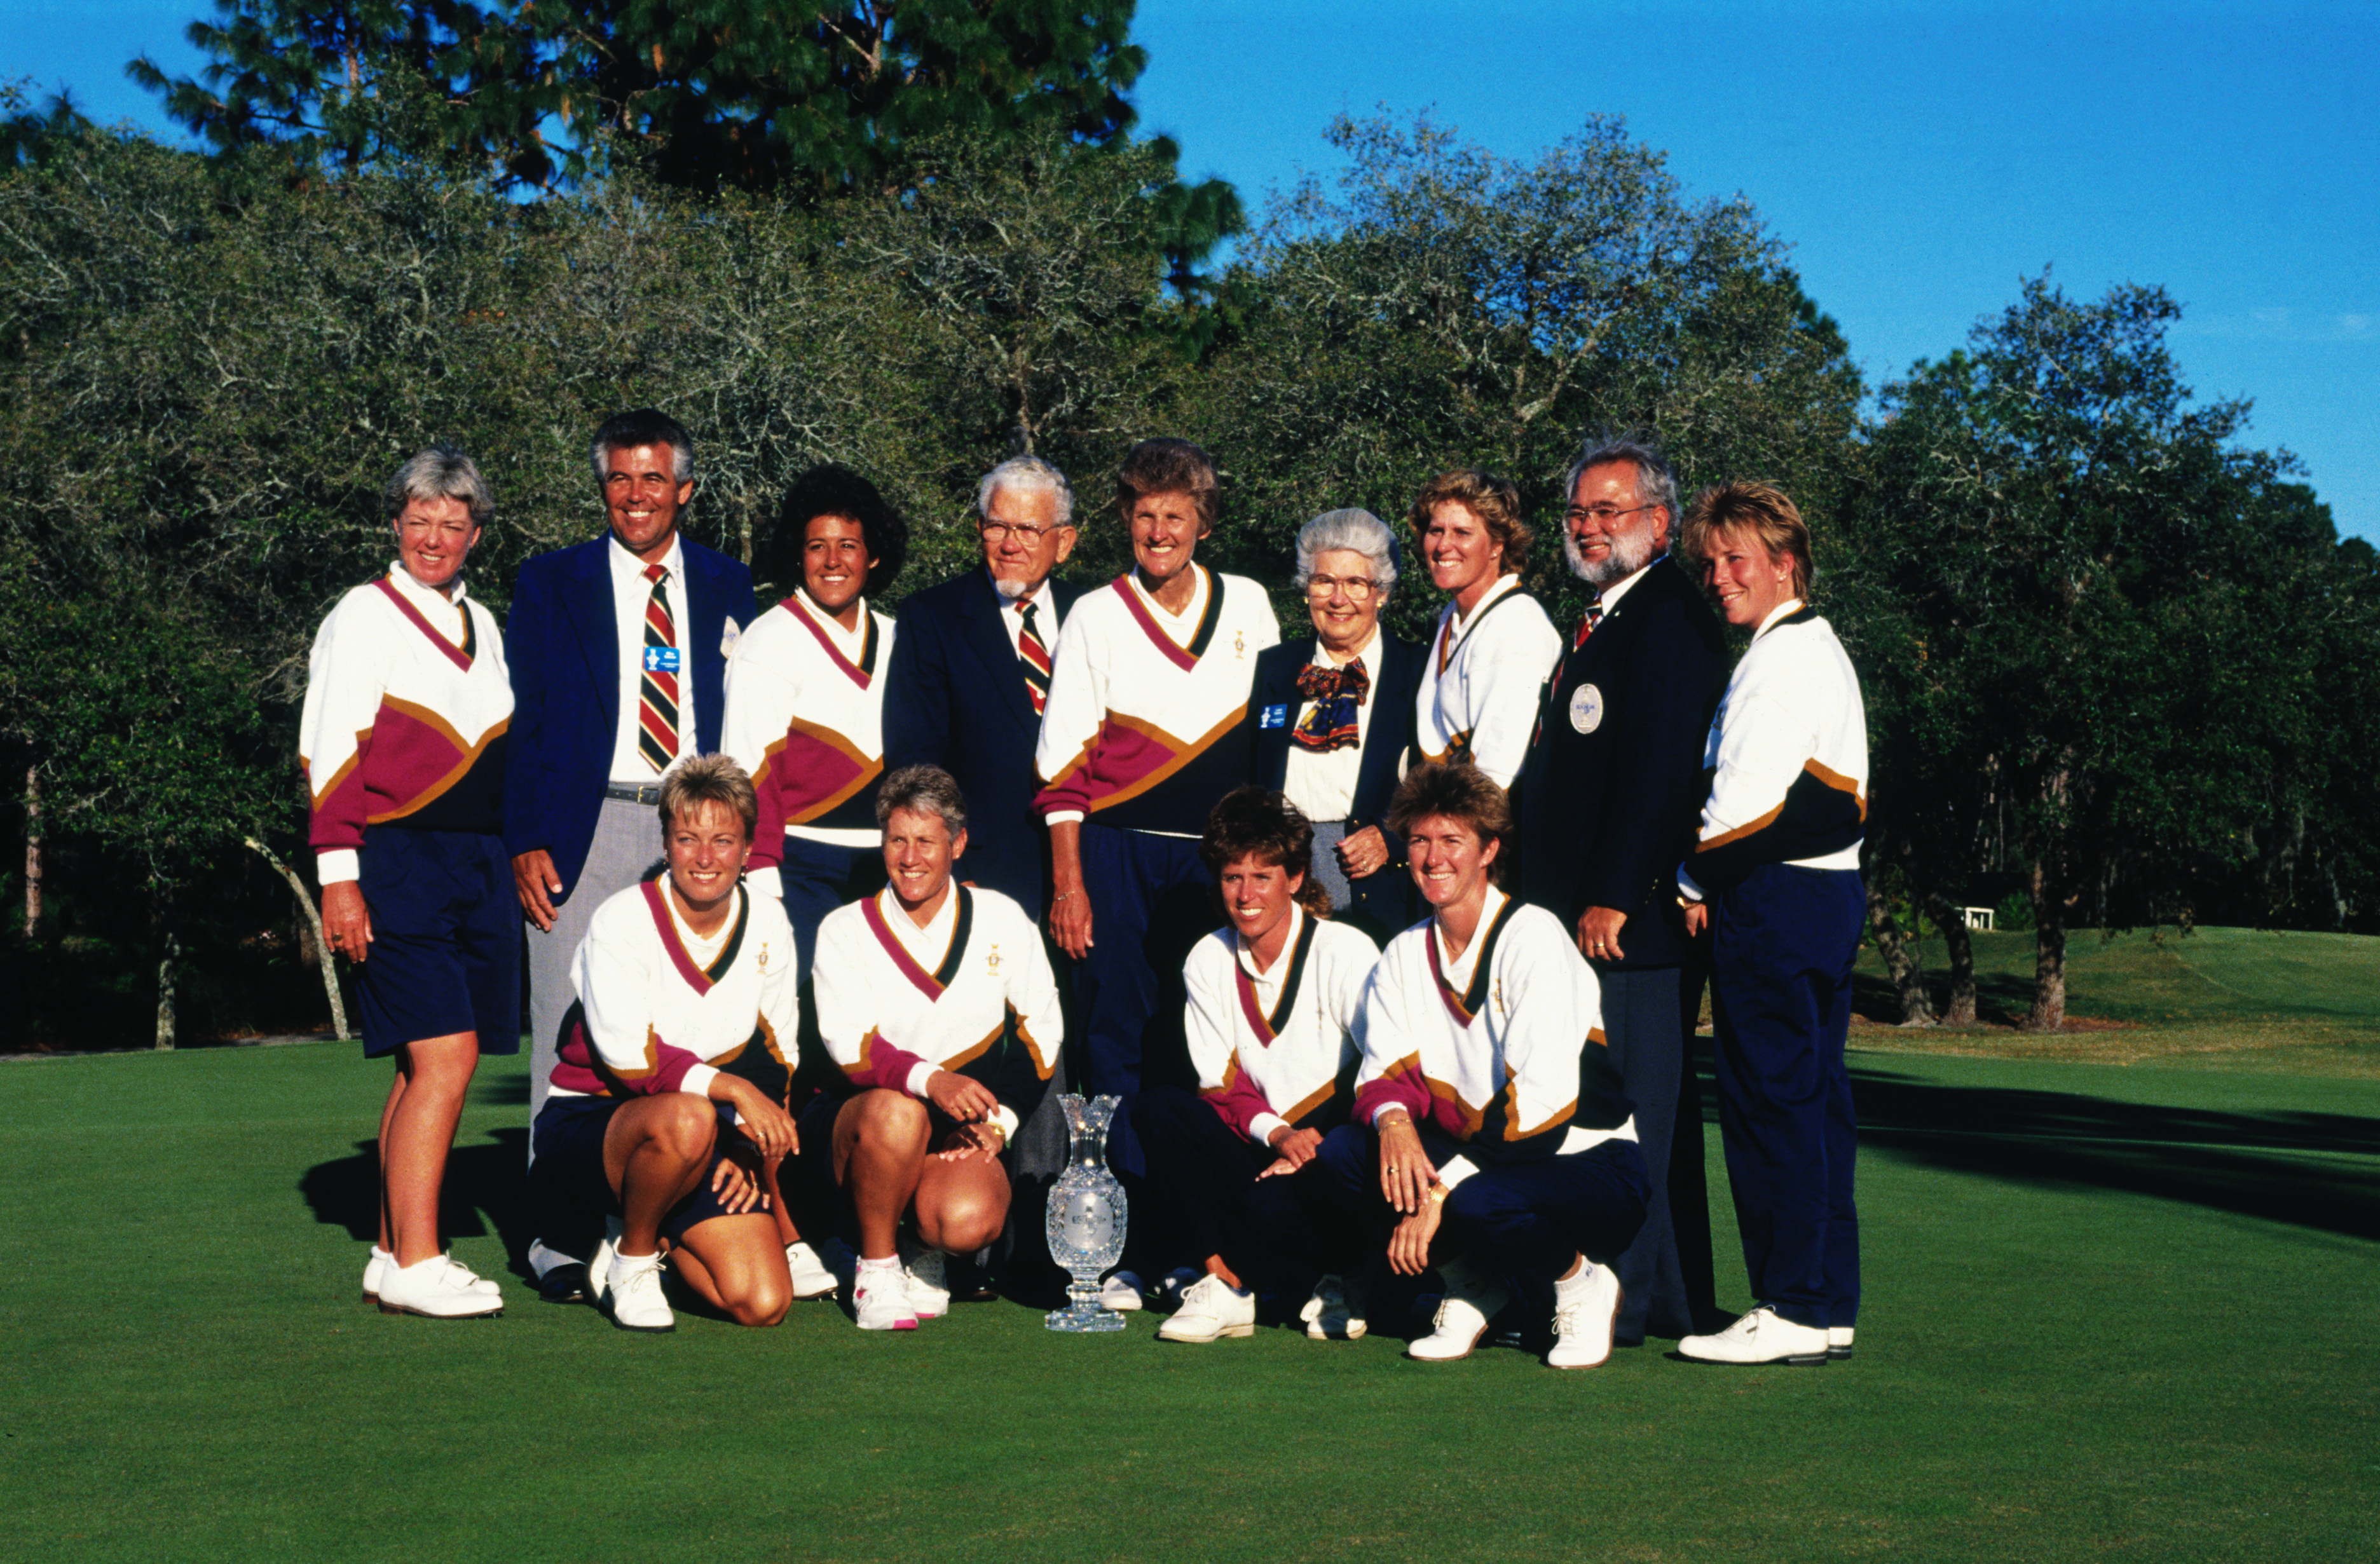 A victorious US team after triumphing in the inaugural Solheim Cup (Photo: Getty Images)